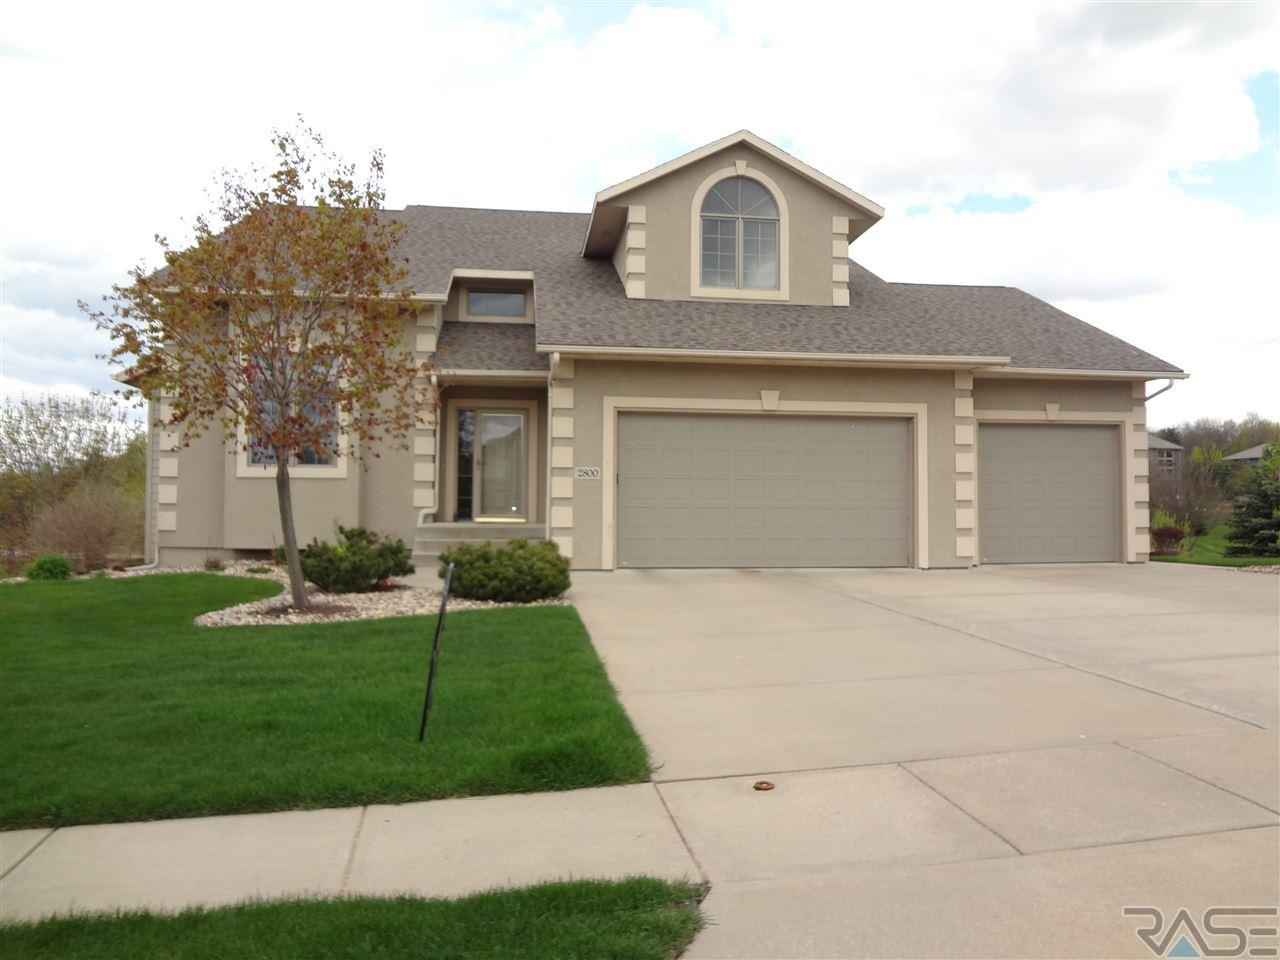 2800 S St. Francis Ln, SIOUX FALLS